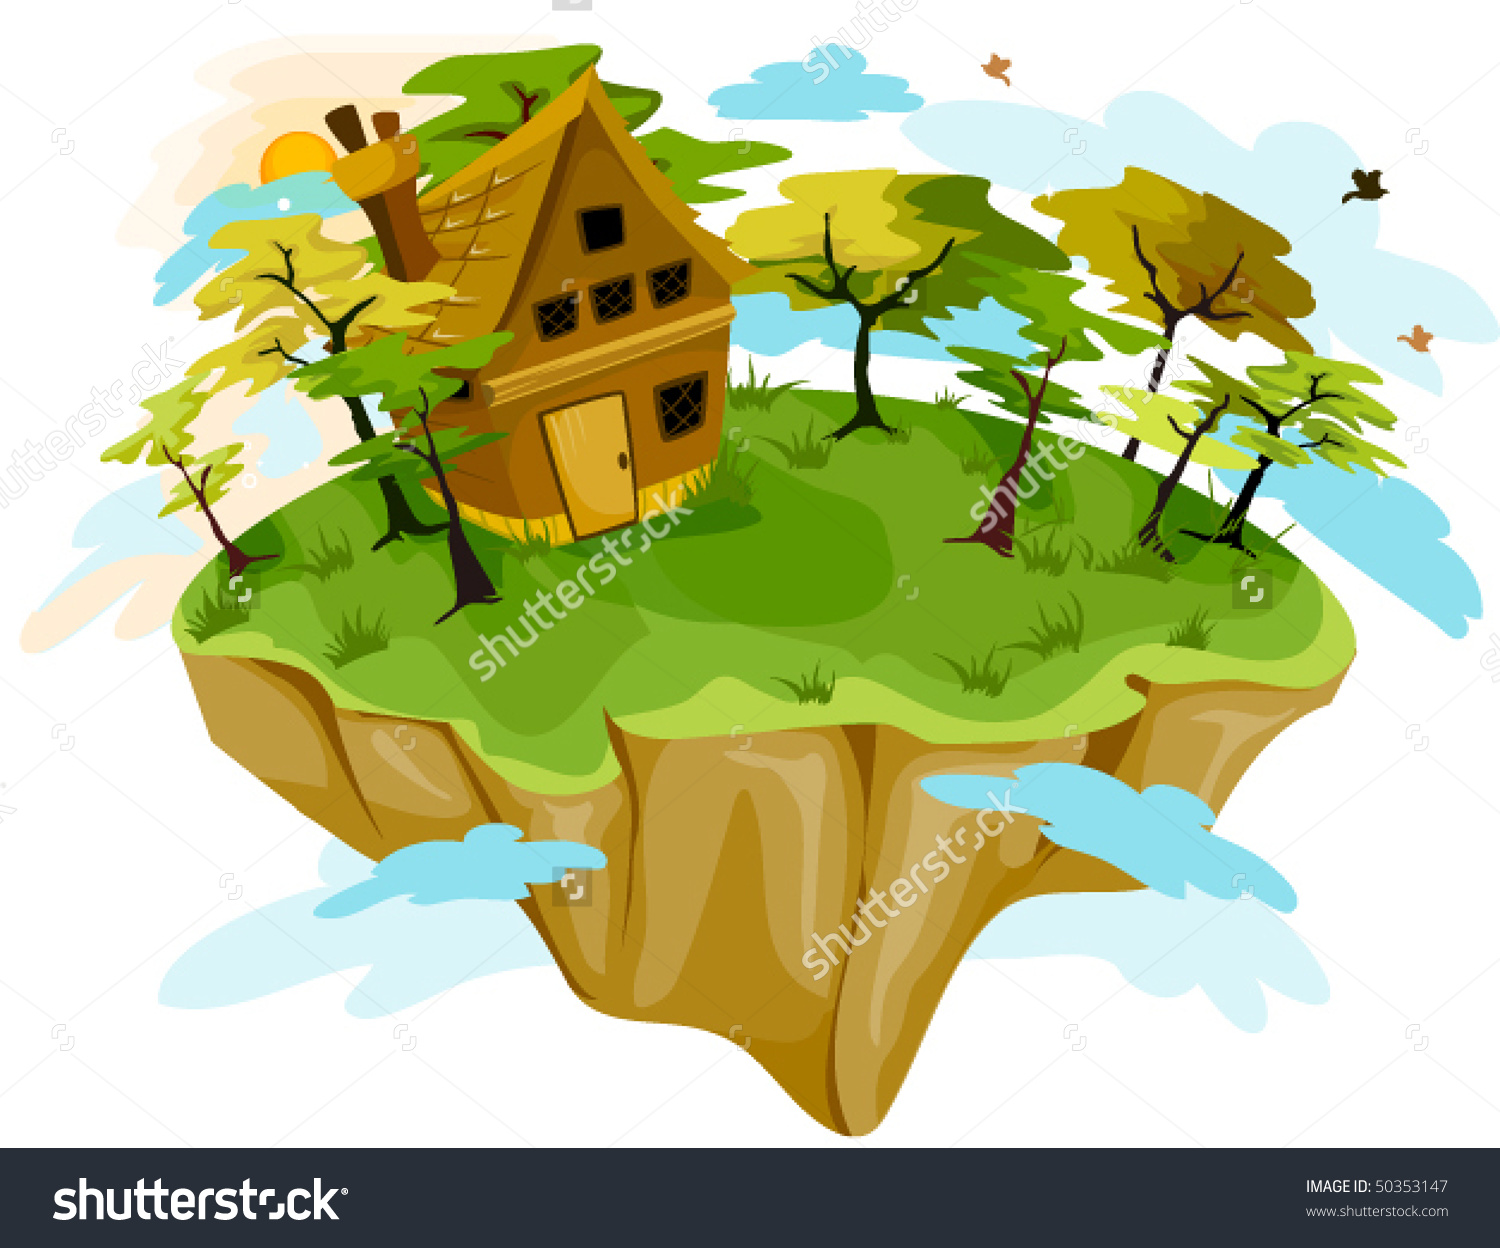 House On Floating Island Vector Stock Vector 50353147.